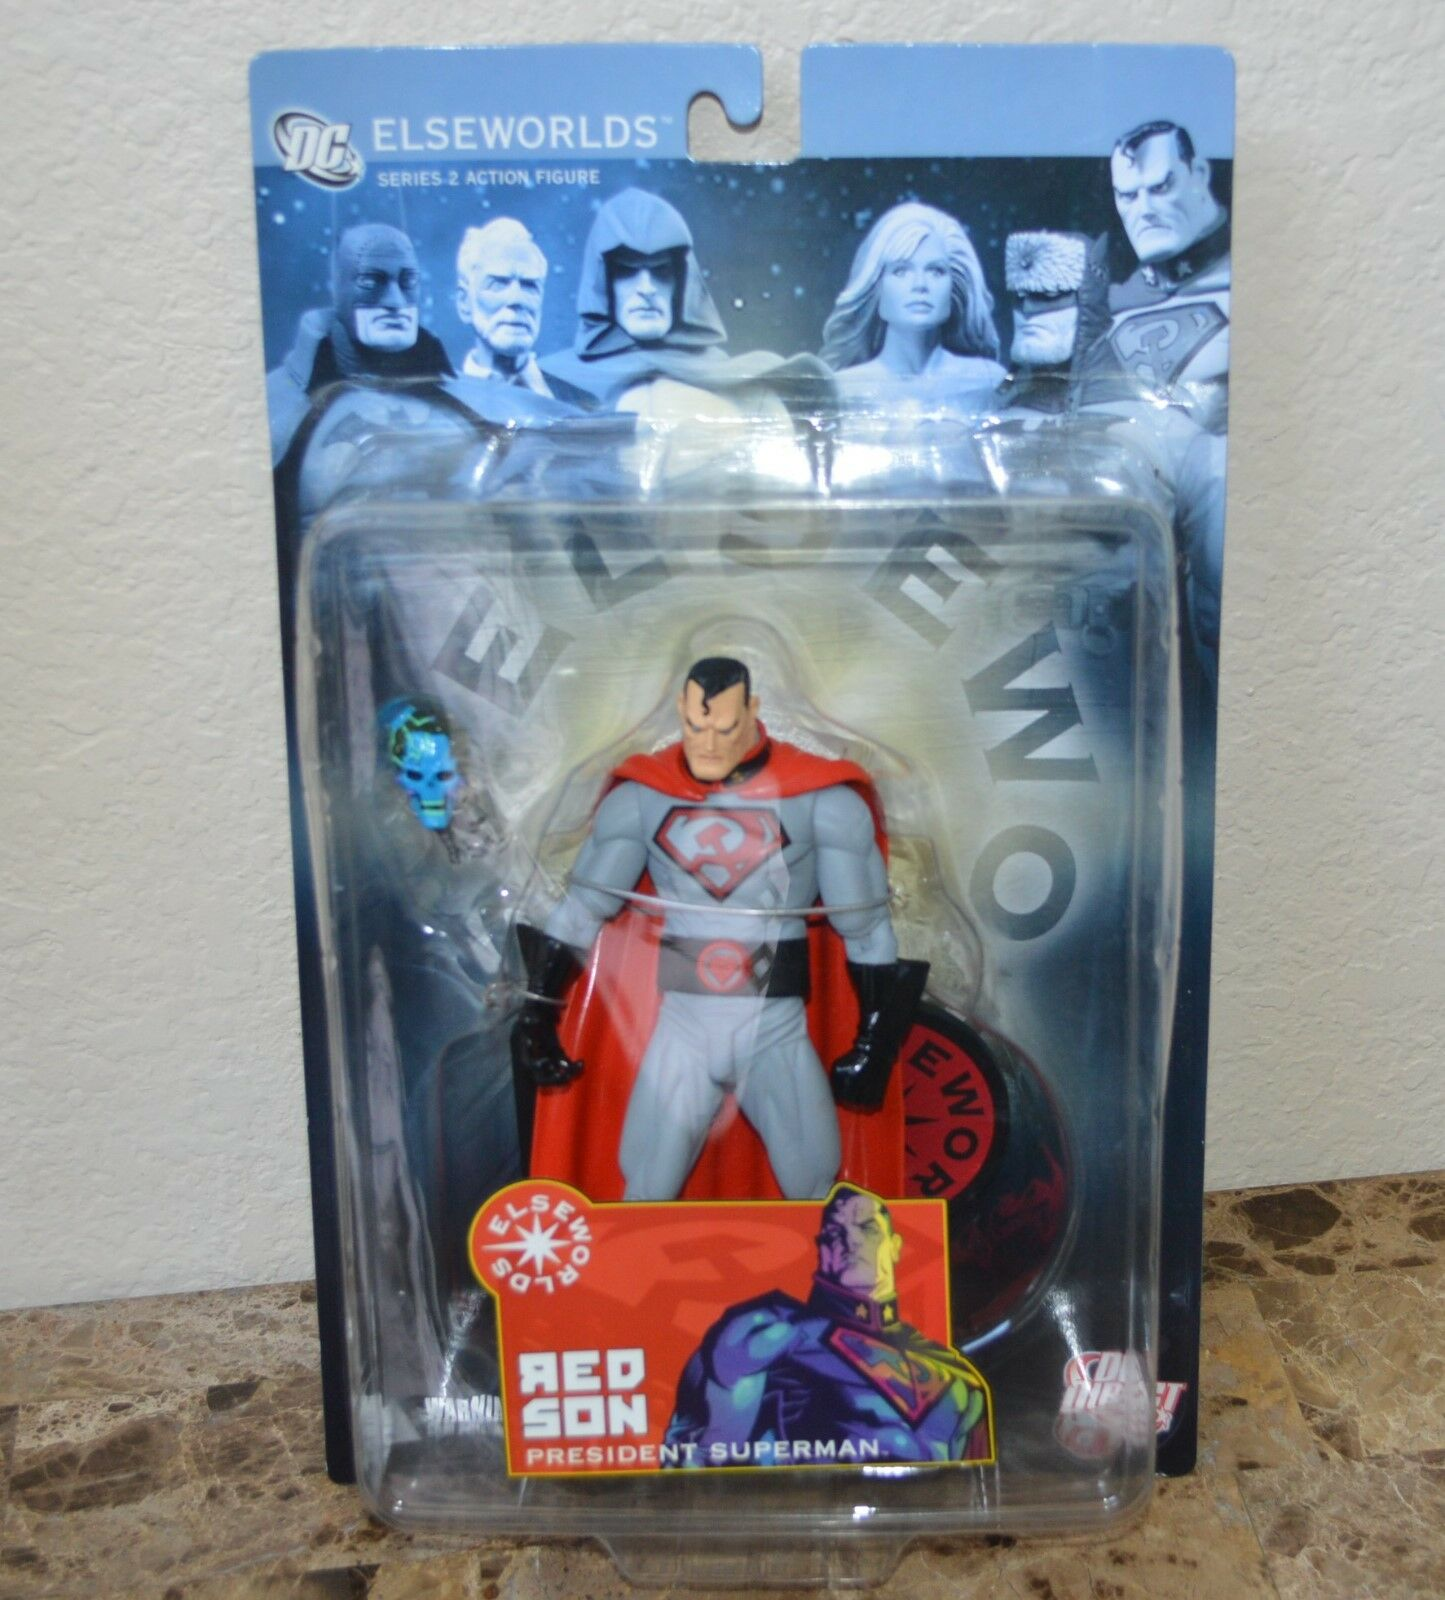 Elseworlds Series 2 ROT Son President Superman 6in Action Figure DC Direct Toys